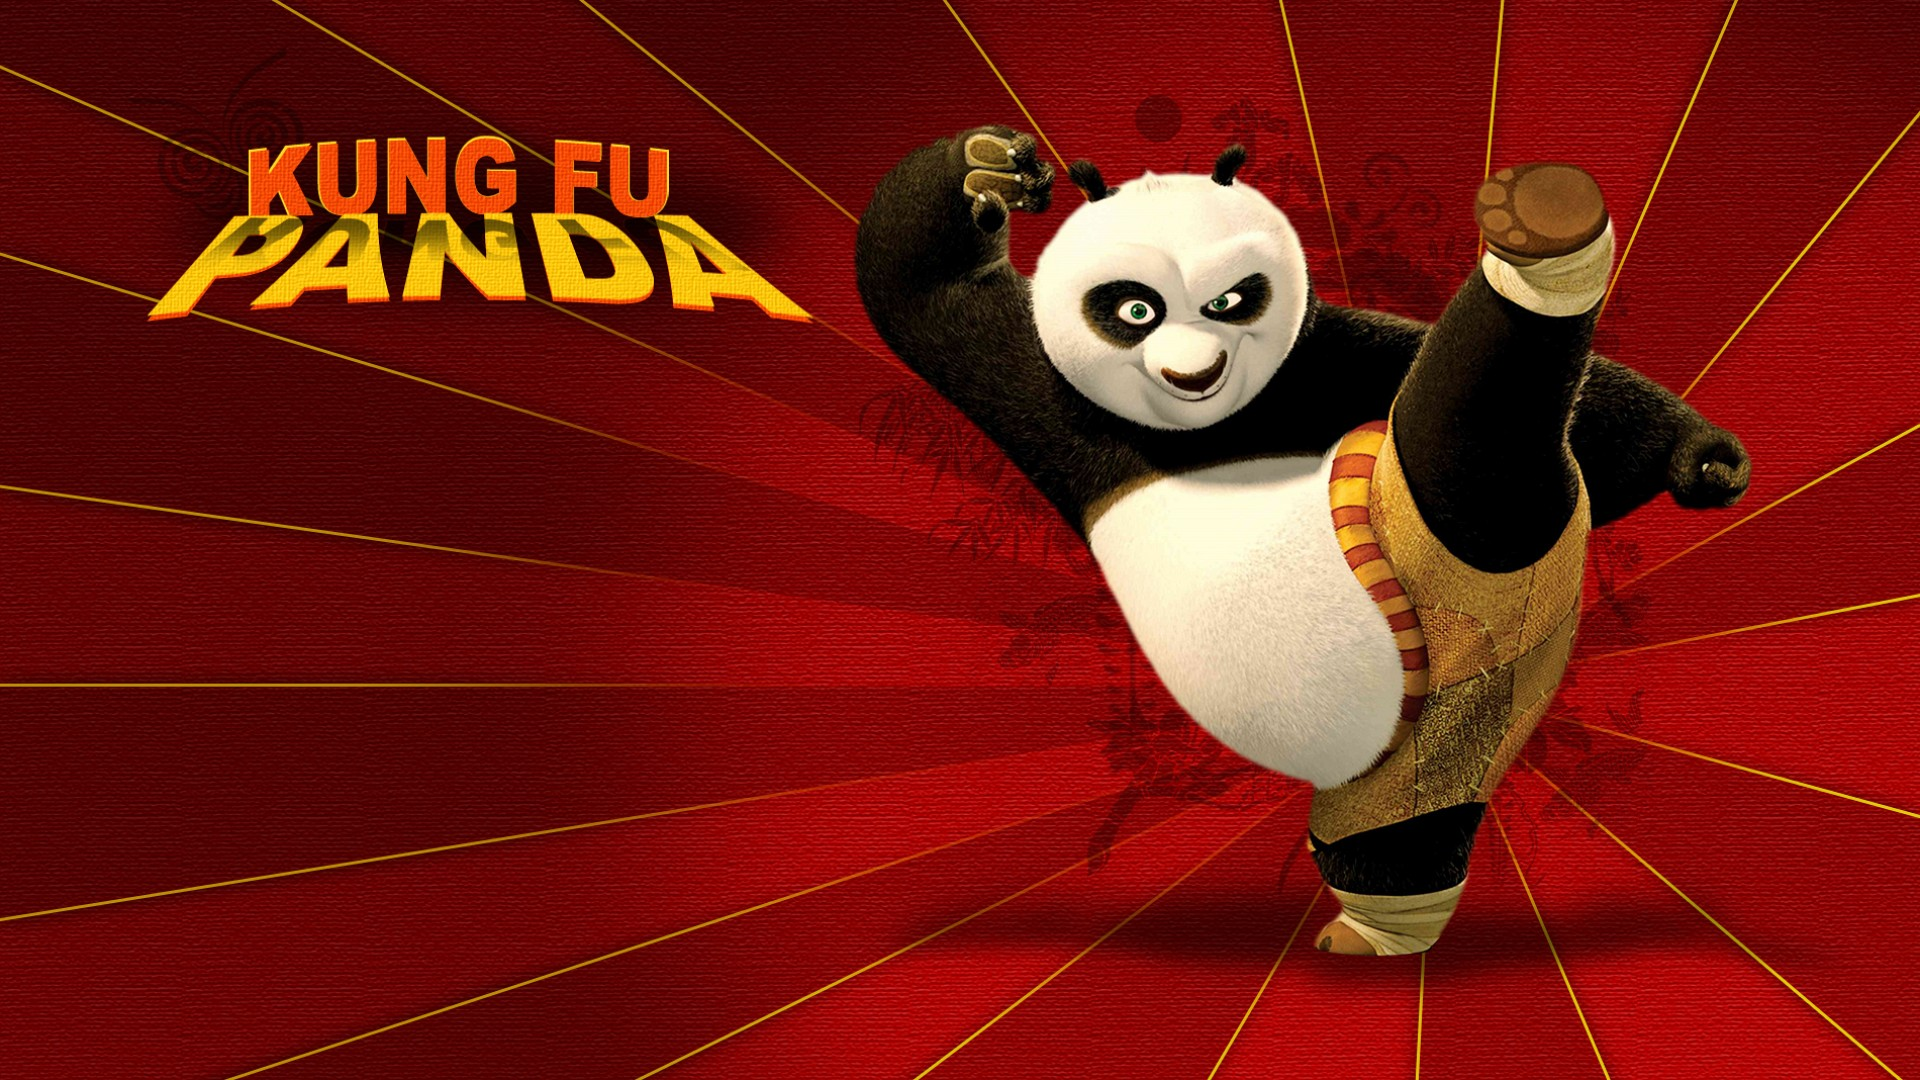 1920x1080px kung fu panda wallpaper - wallpapersafari